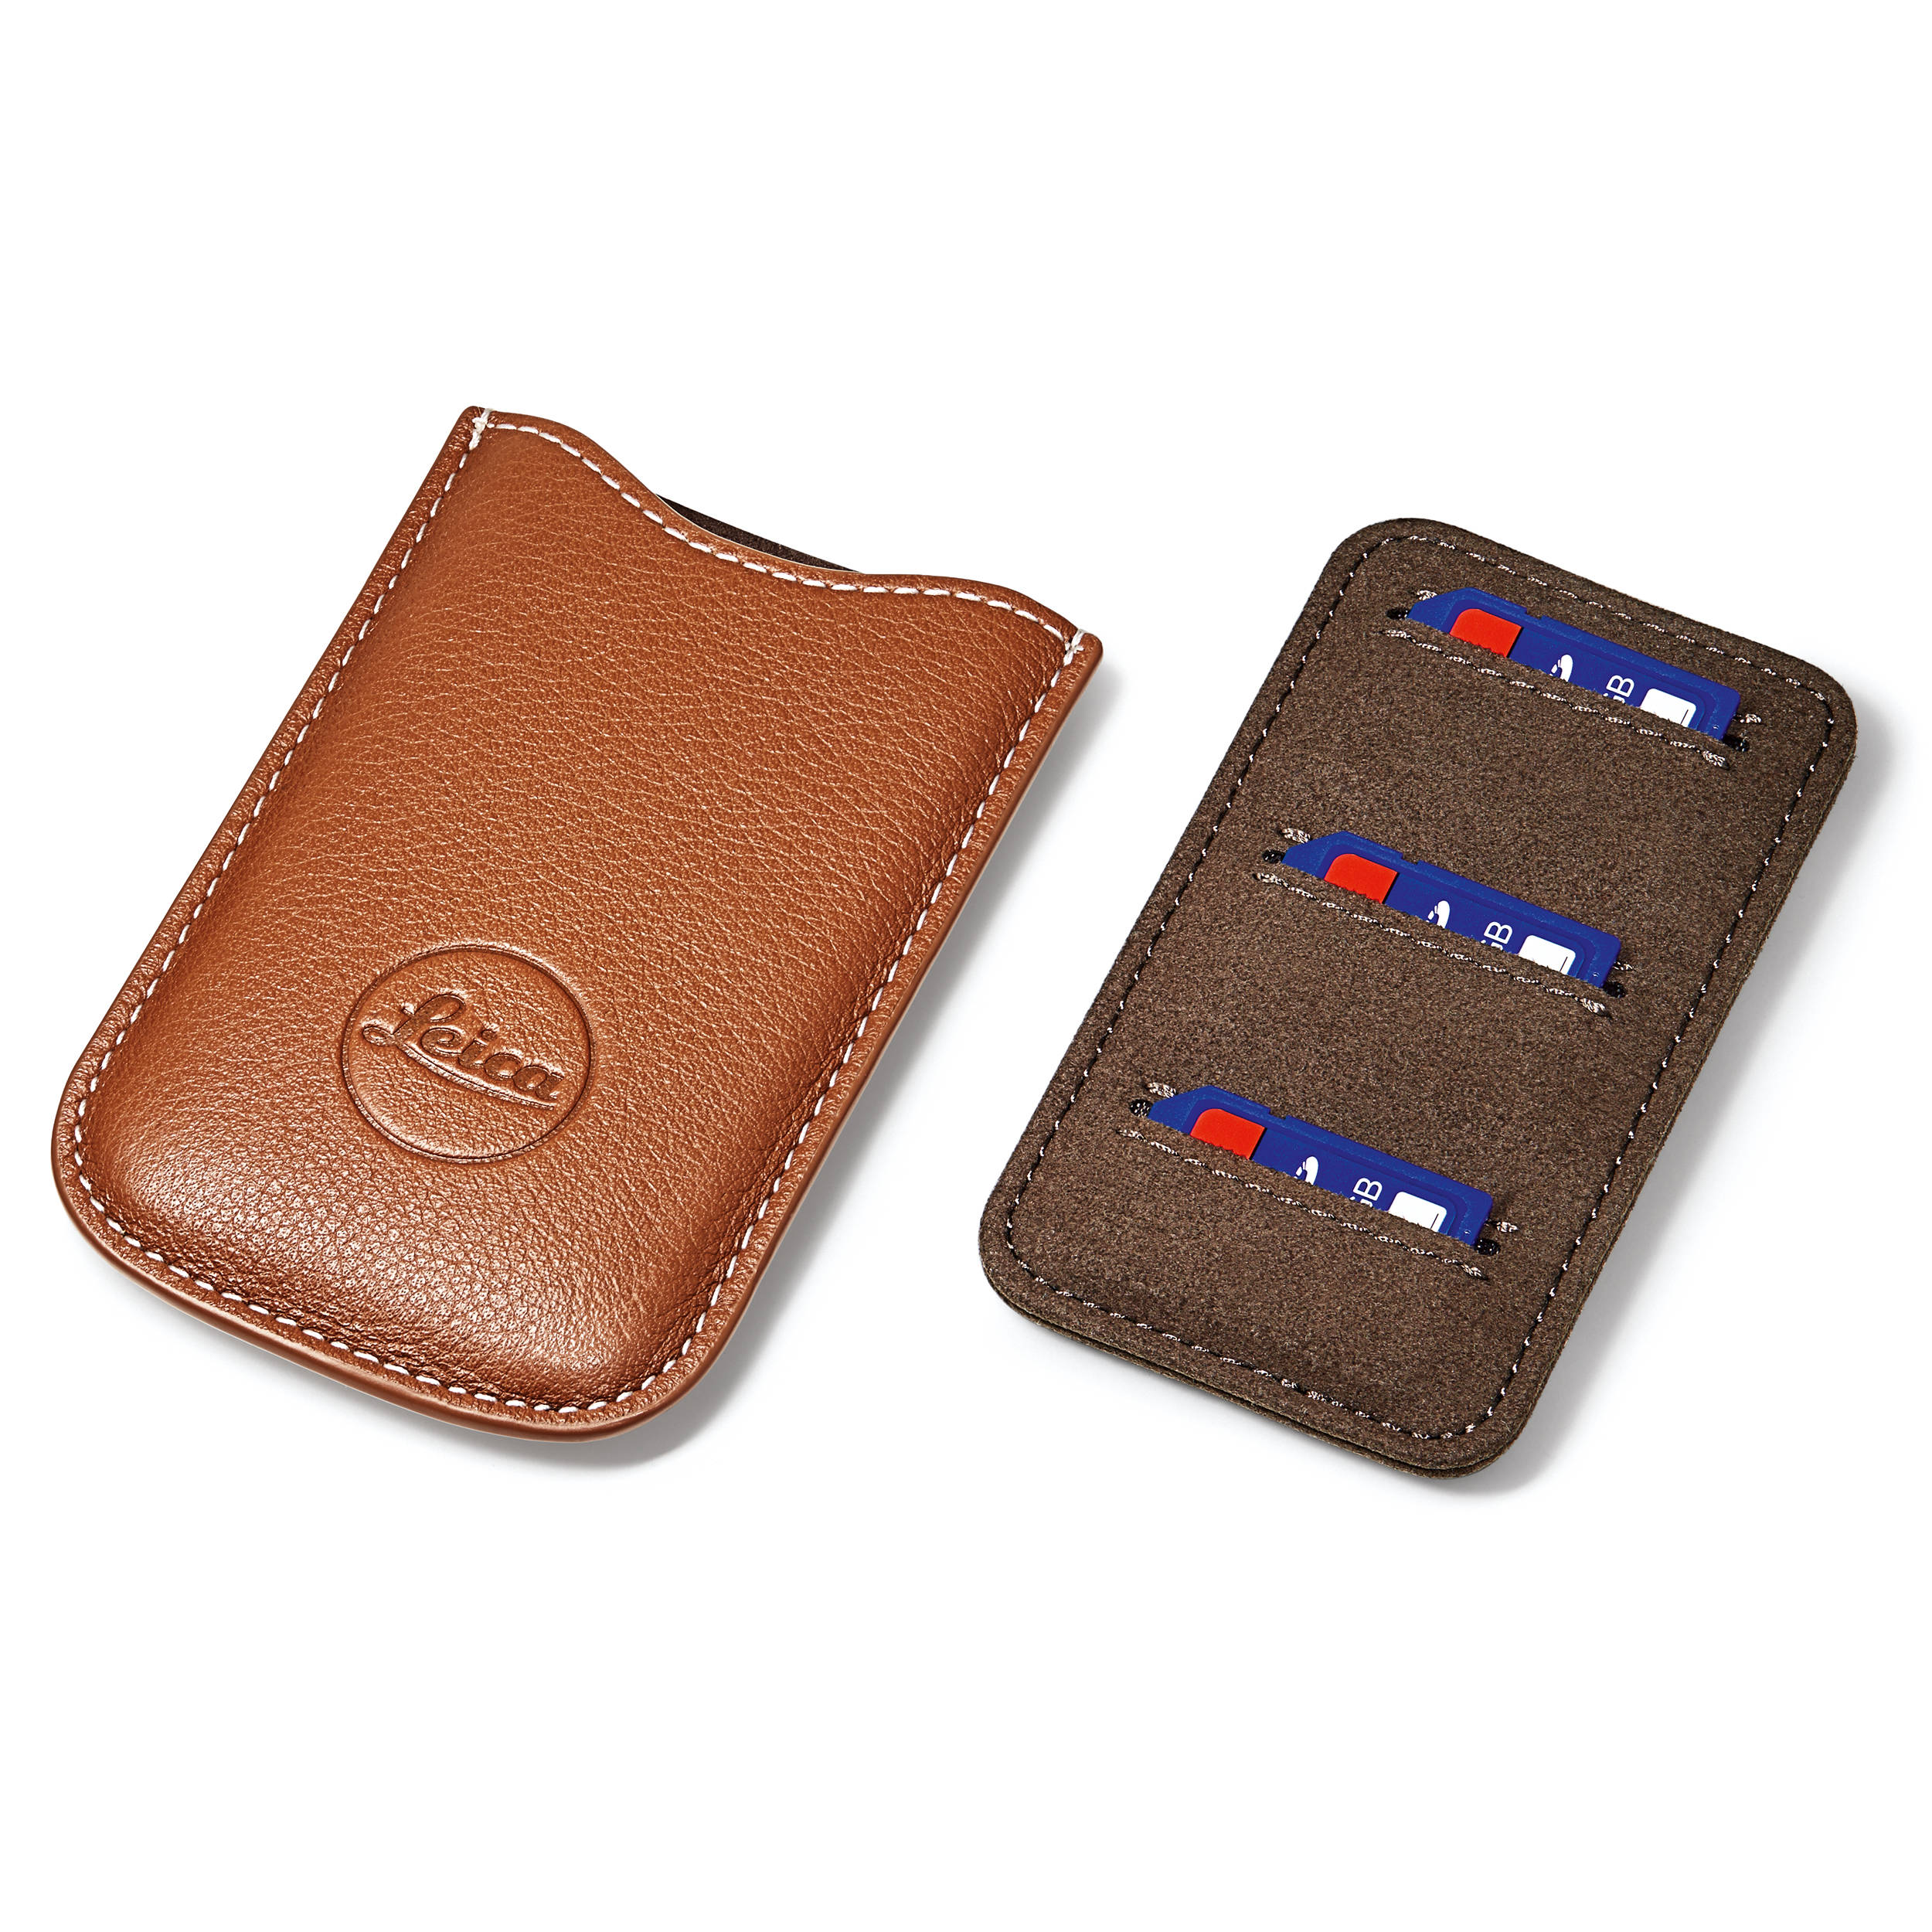 Leica SD and Credit Card Holder (Cognac) 18539 B&H Photo Video